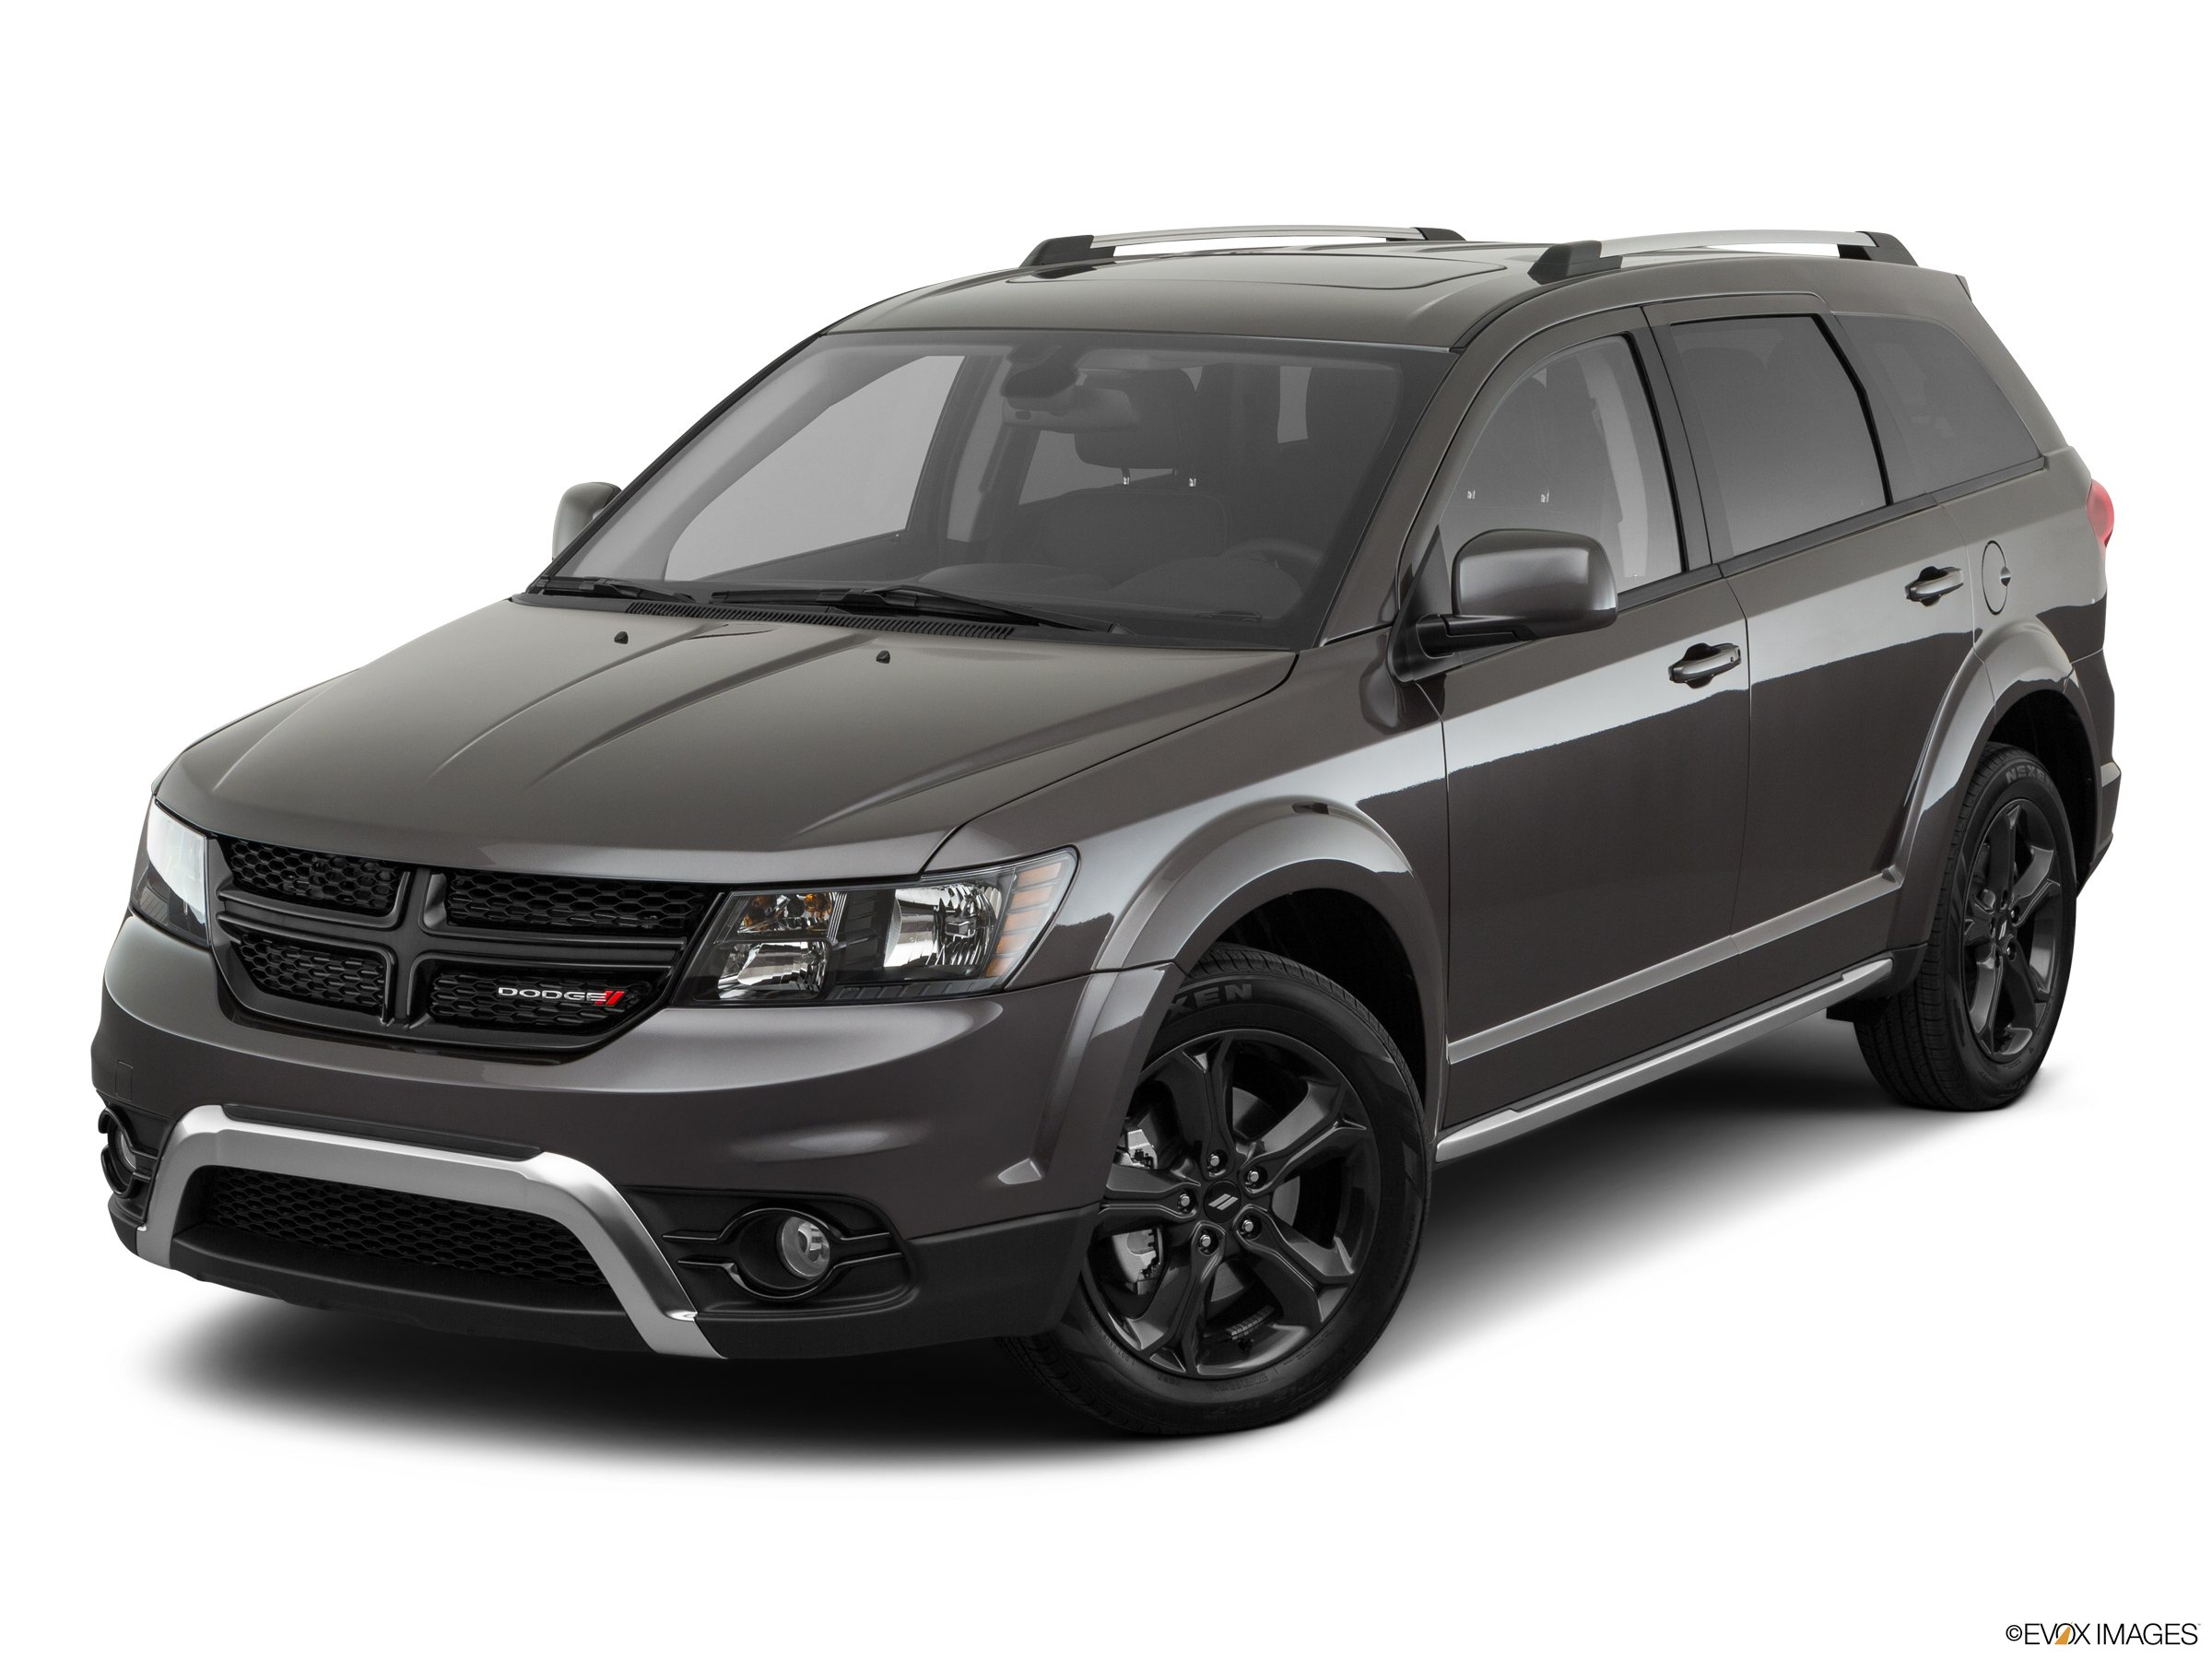 2020 Dodge Journey Crossroad FWD CUV